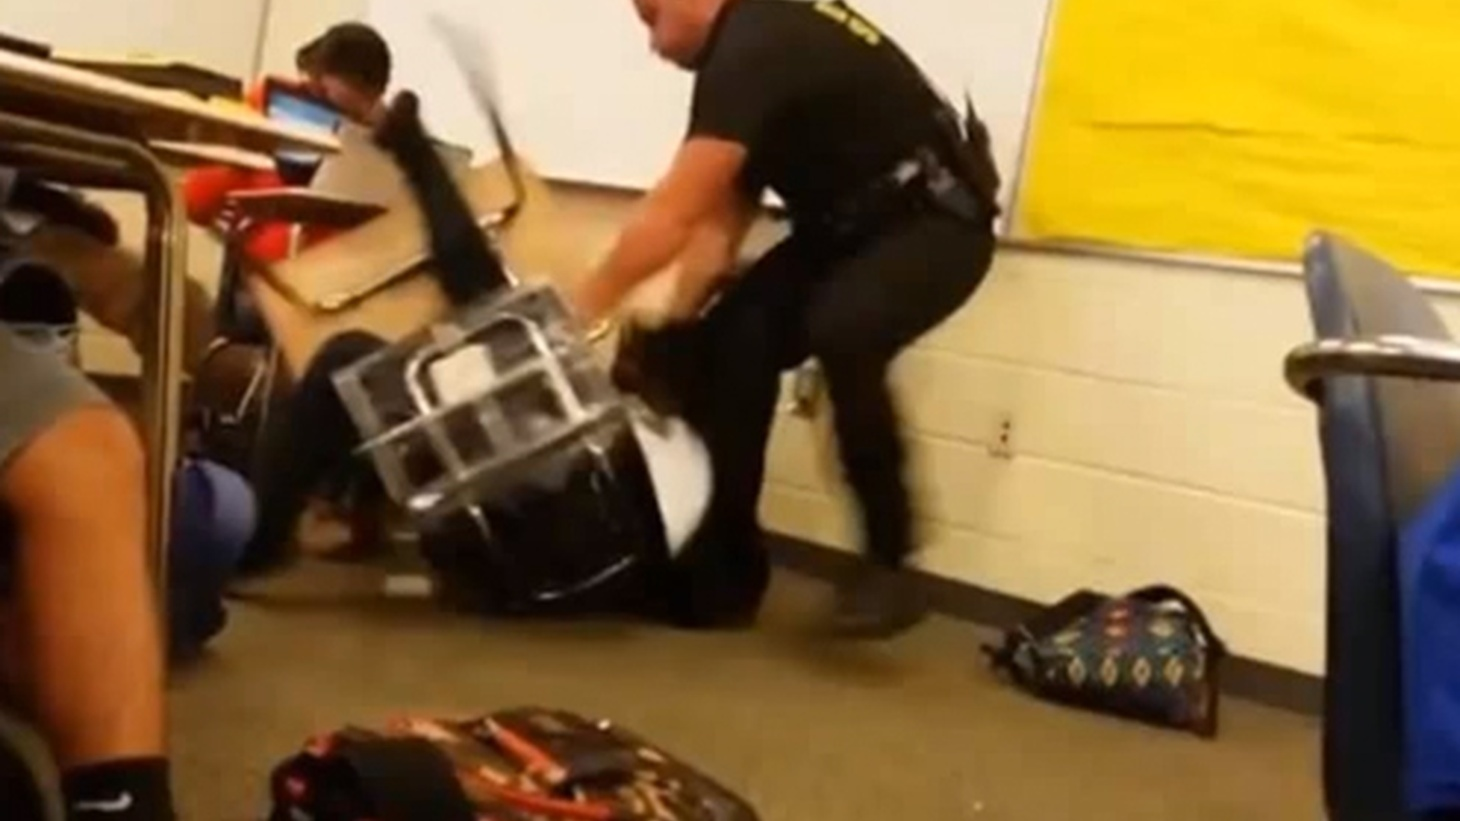 Video of a white cop abusing a black school girl went viral this week, causing widespread outrage. Uniformed officers with deadly weapons are now part of daily life on thousands of public school campuses. They're supposed to provide security, but they're often called on for disciplinary action. We hear about the consequences — especially for children of color.